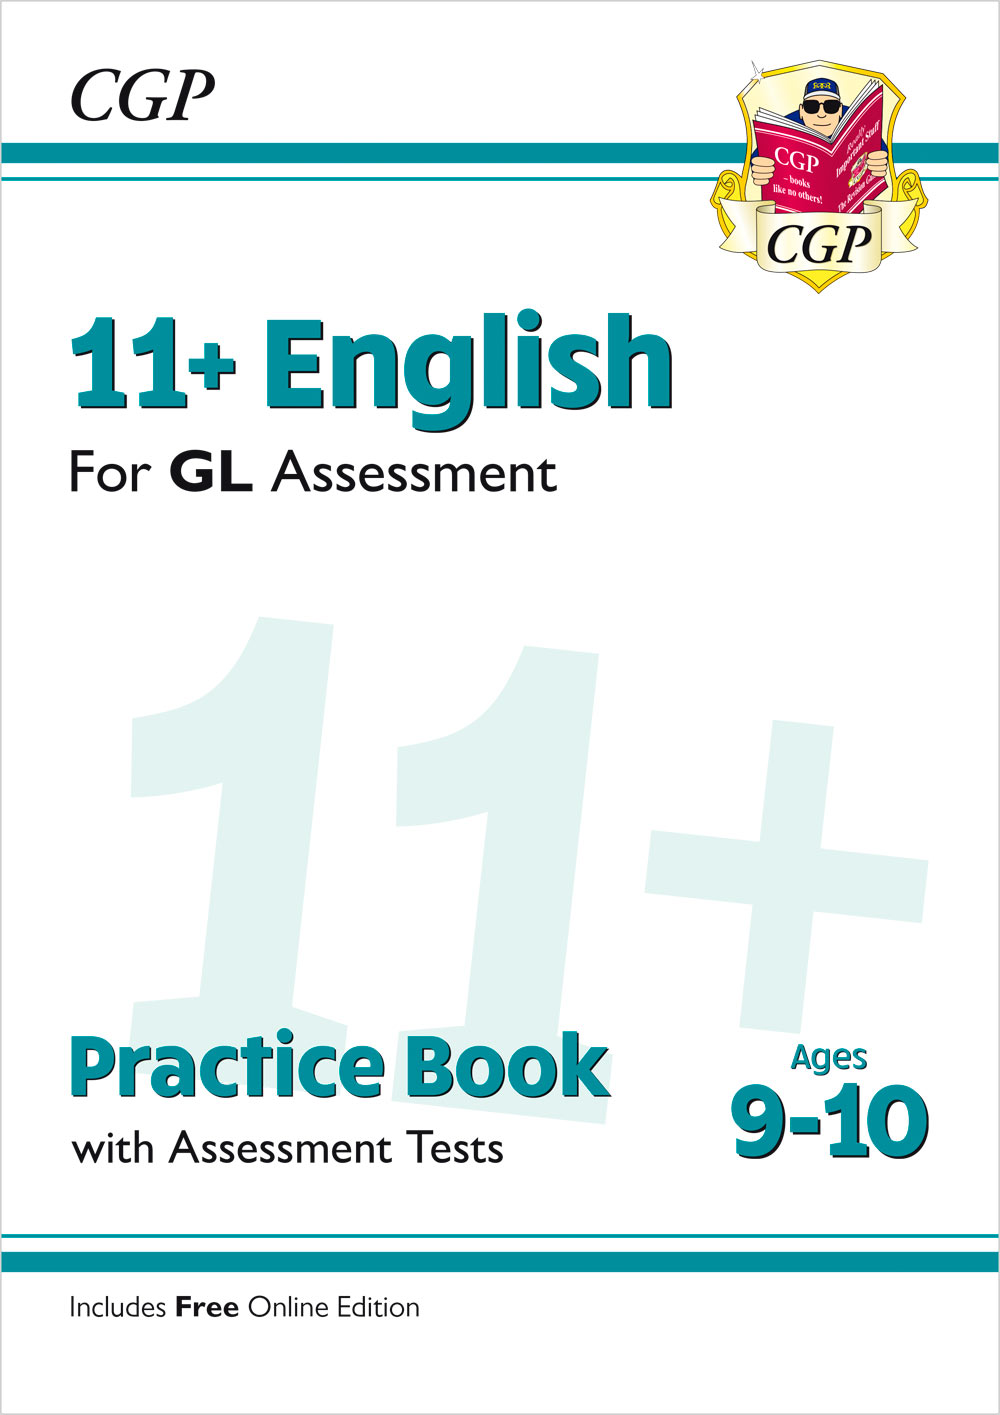 E5QE2 - New 11+ GL English Practice Book & Assessment Tests - Ages 9-10 (with Online Edition)